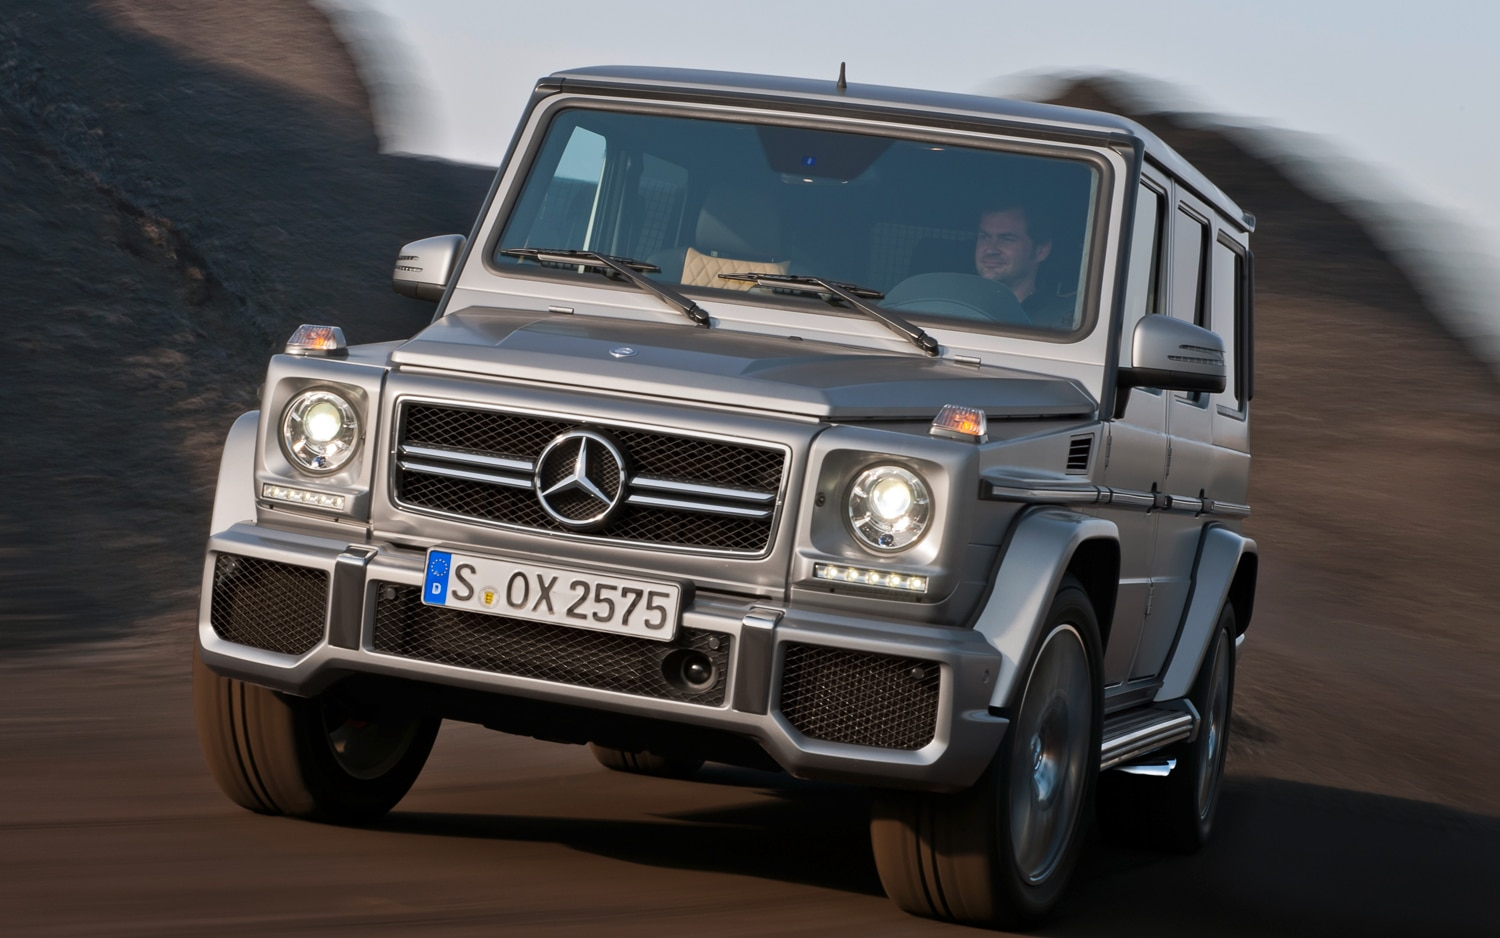 2013 Mercedes Benz G63 AMG Front View In Motion1